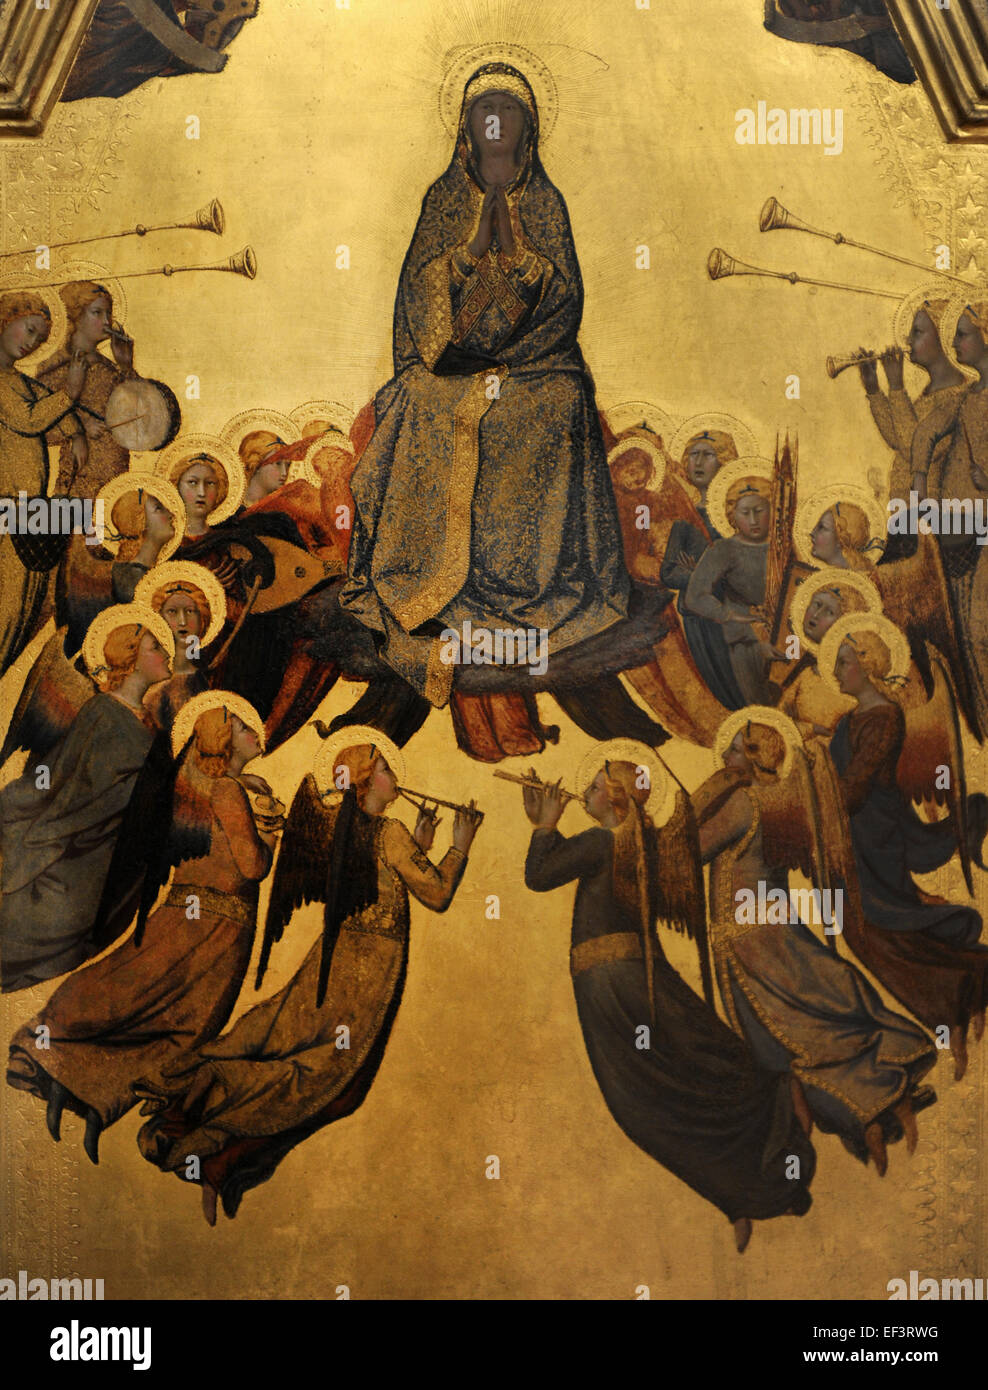 Lippo Memmi (1291-1356). Italian painter from Siena. The Assumption of the  Virgin, 1340. Alte Pinakothek. Munich. Germany.